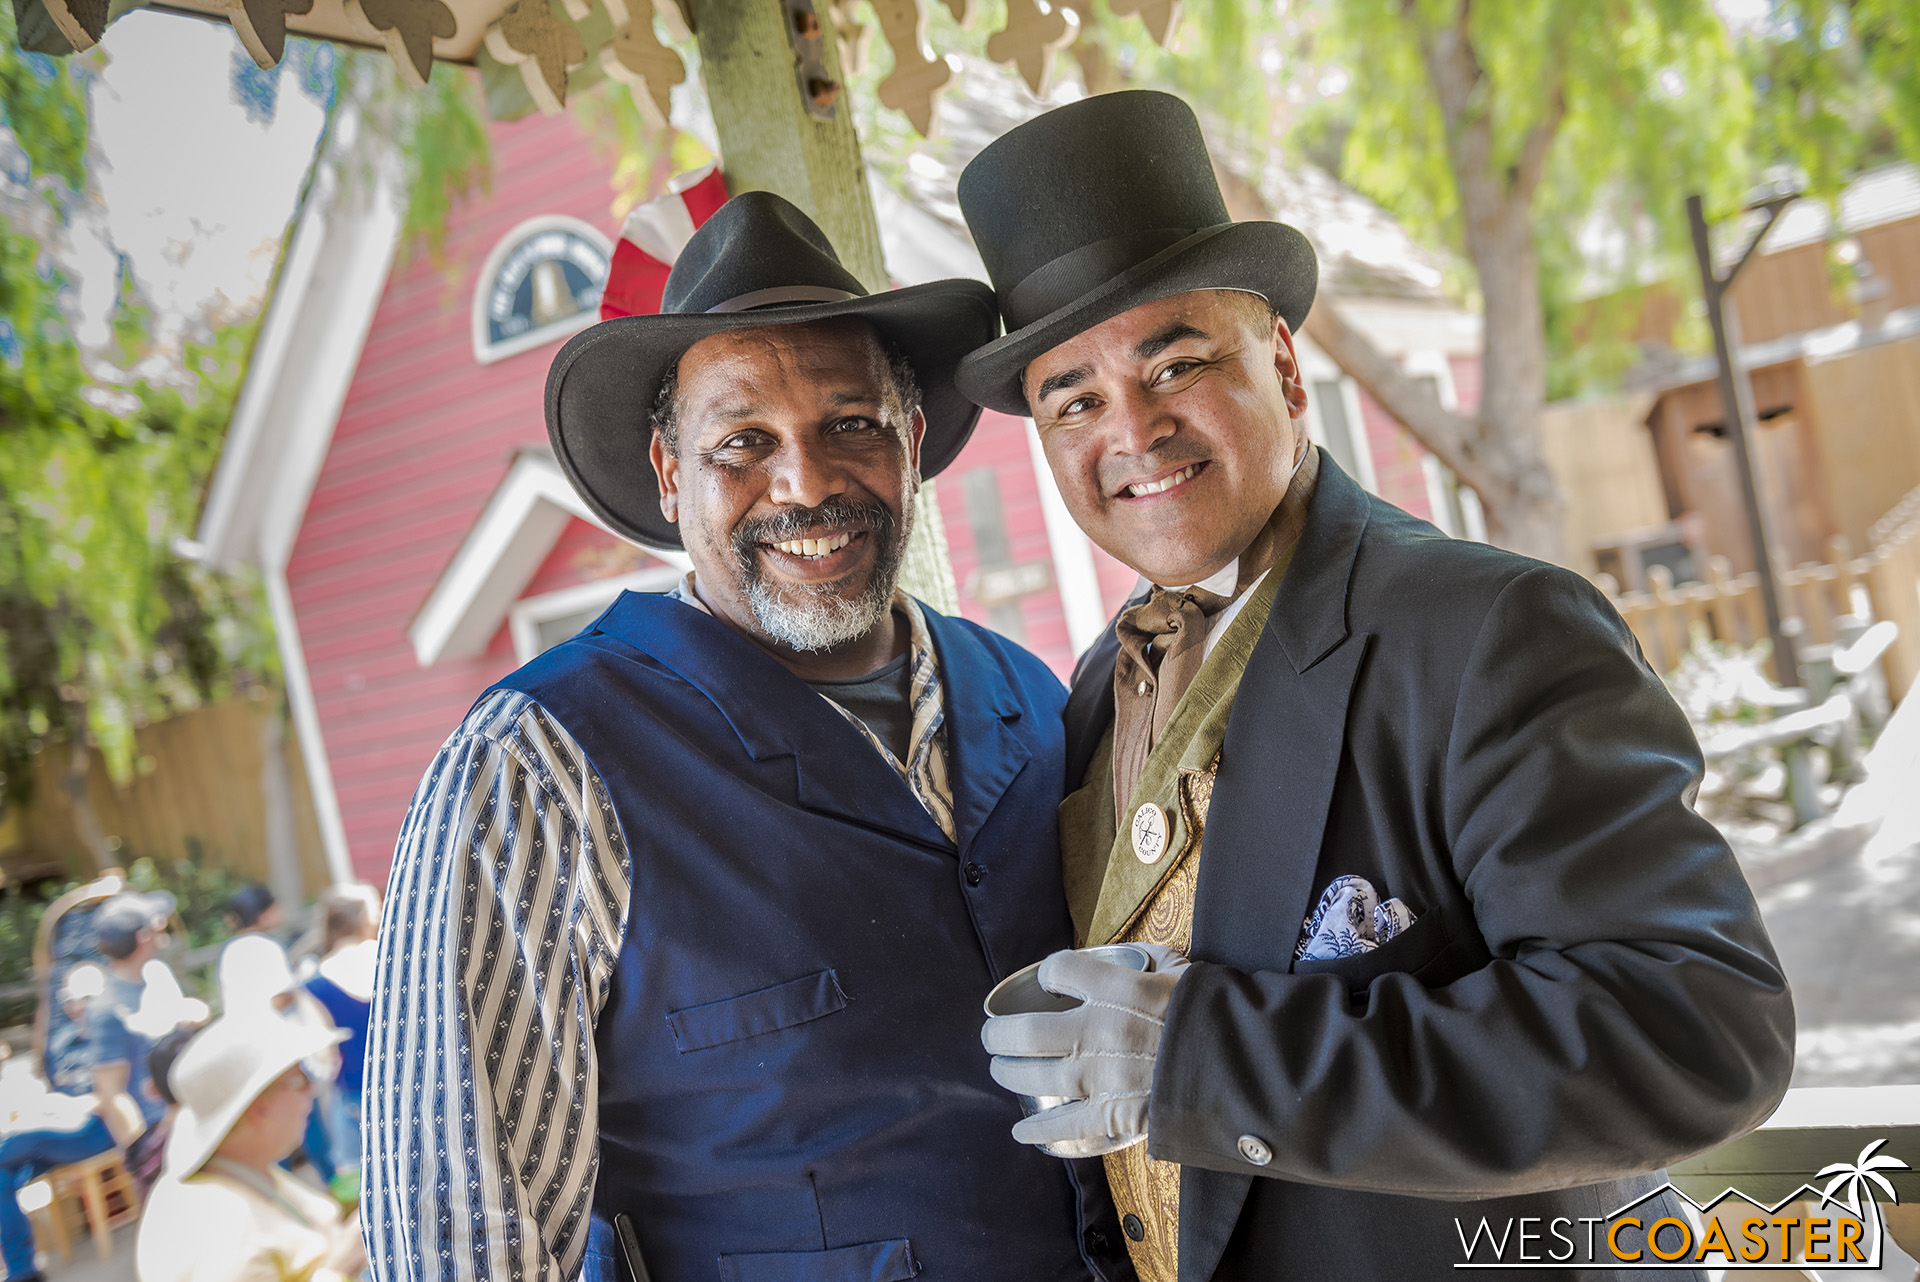 Mayor Parnell poses with Bernard, real-life Ghost Town Alive! stage manager.